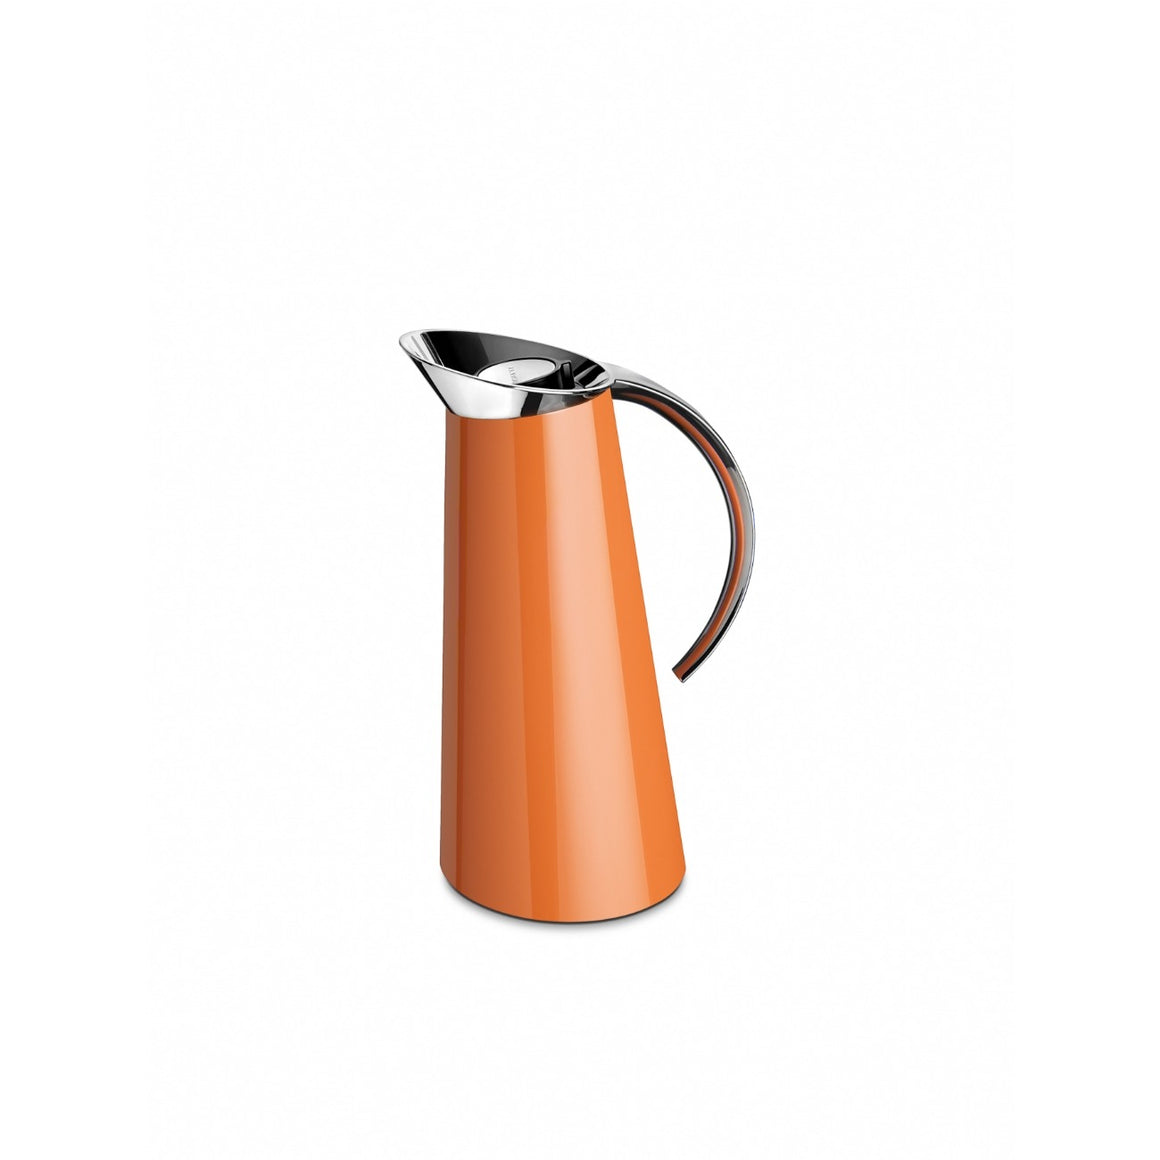 Bugatti - Glamour Thermal Carafe, Orange